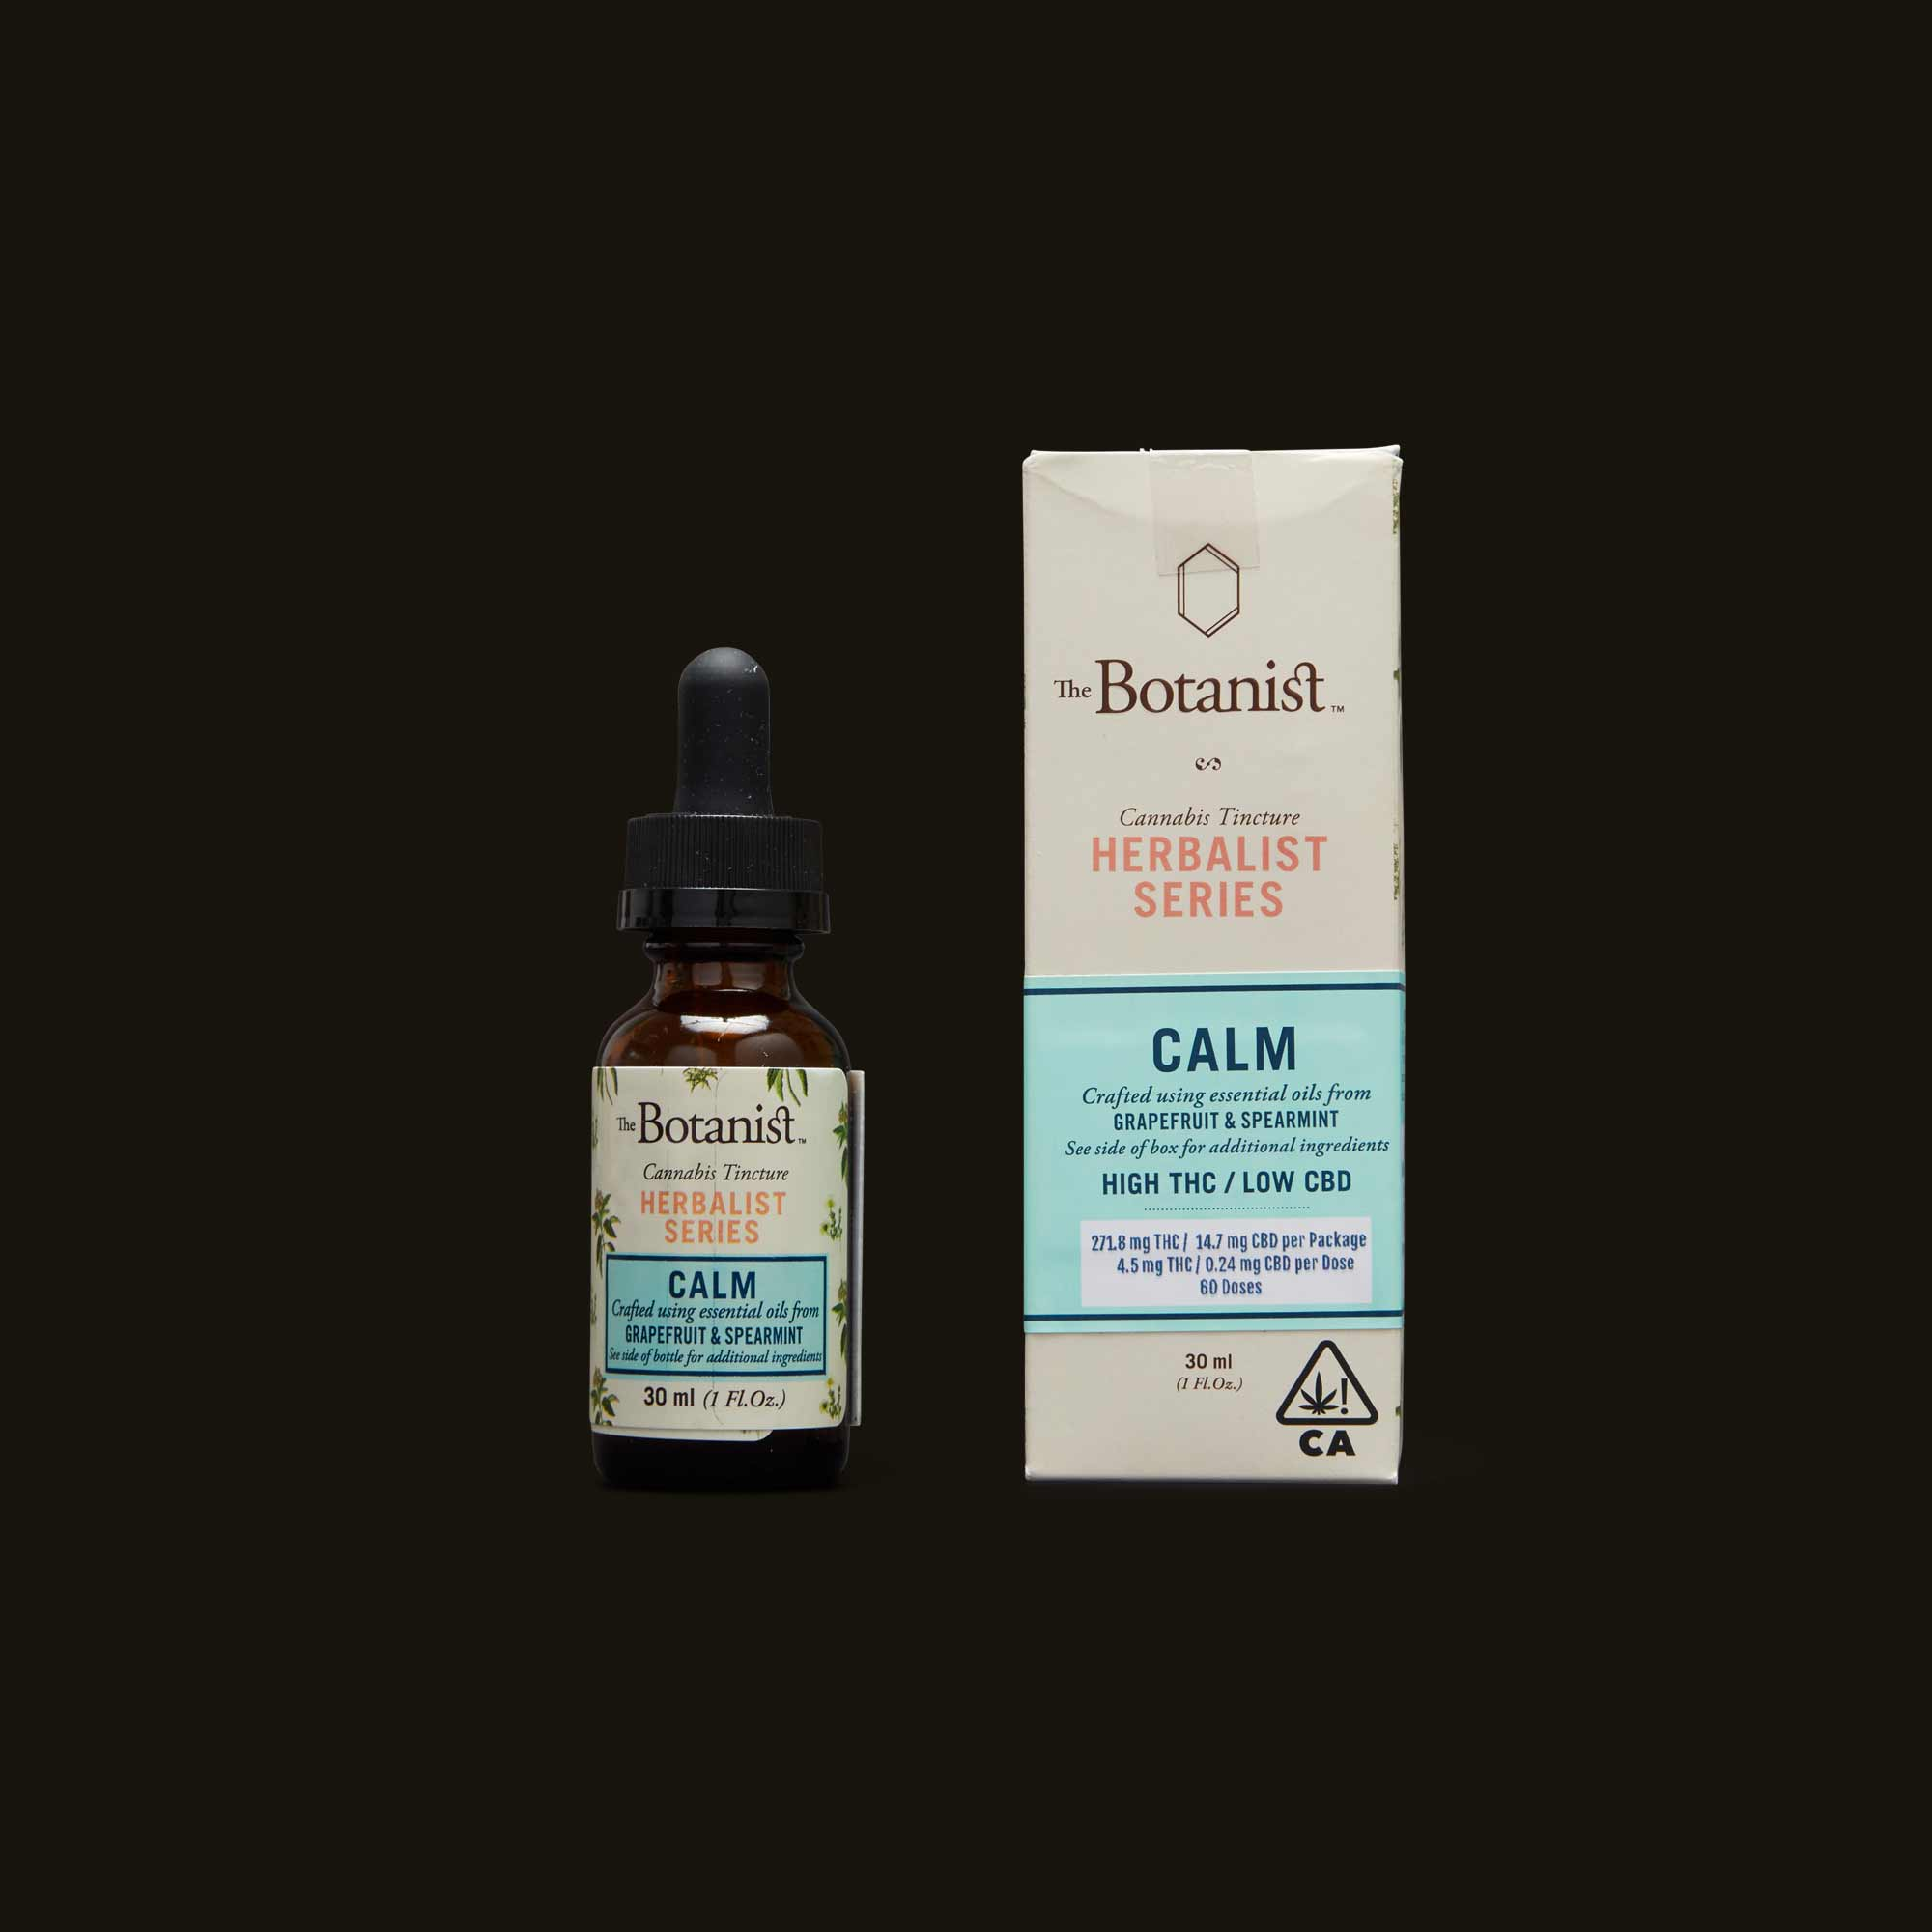 The Botanist Calm Tincture